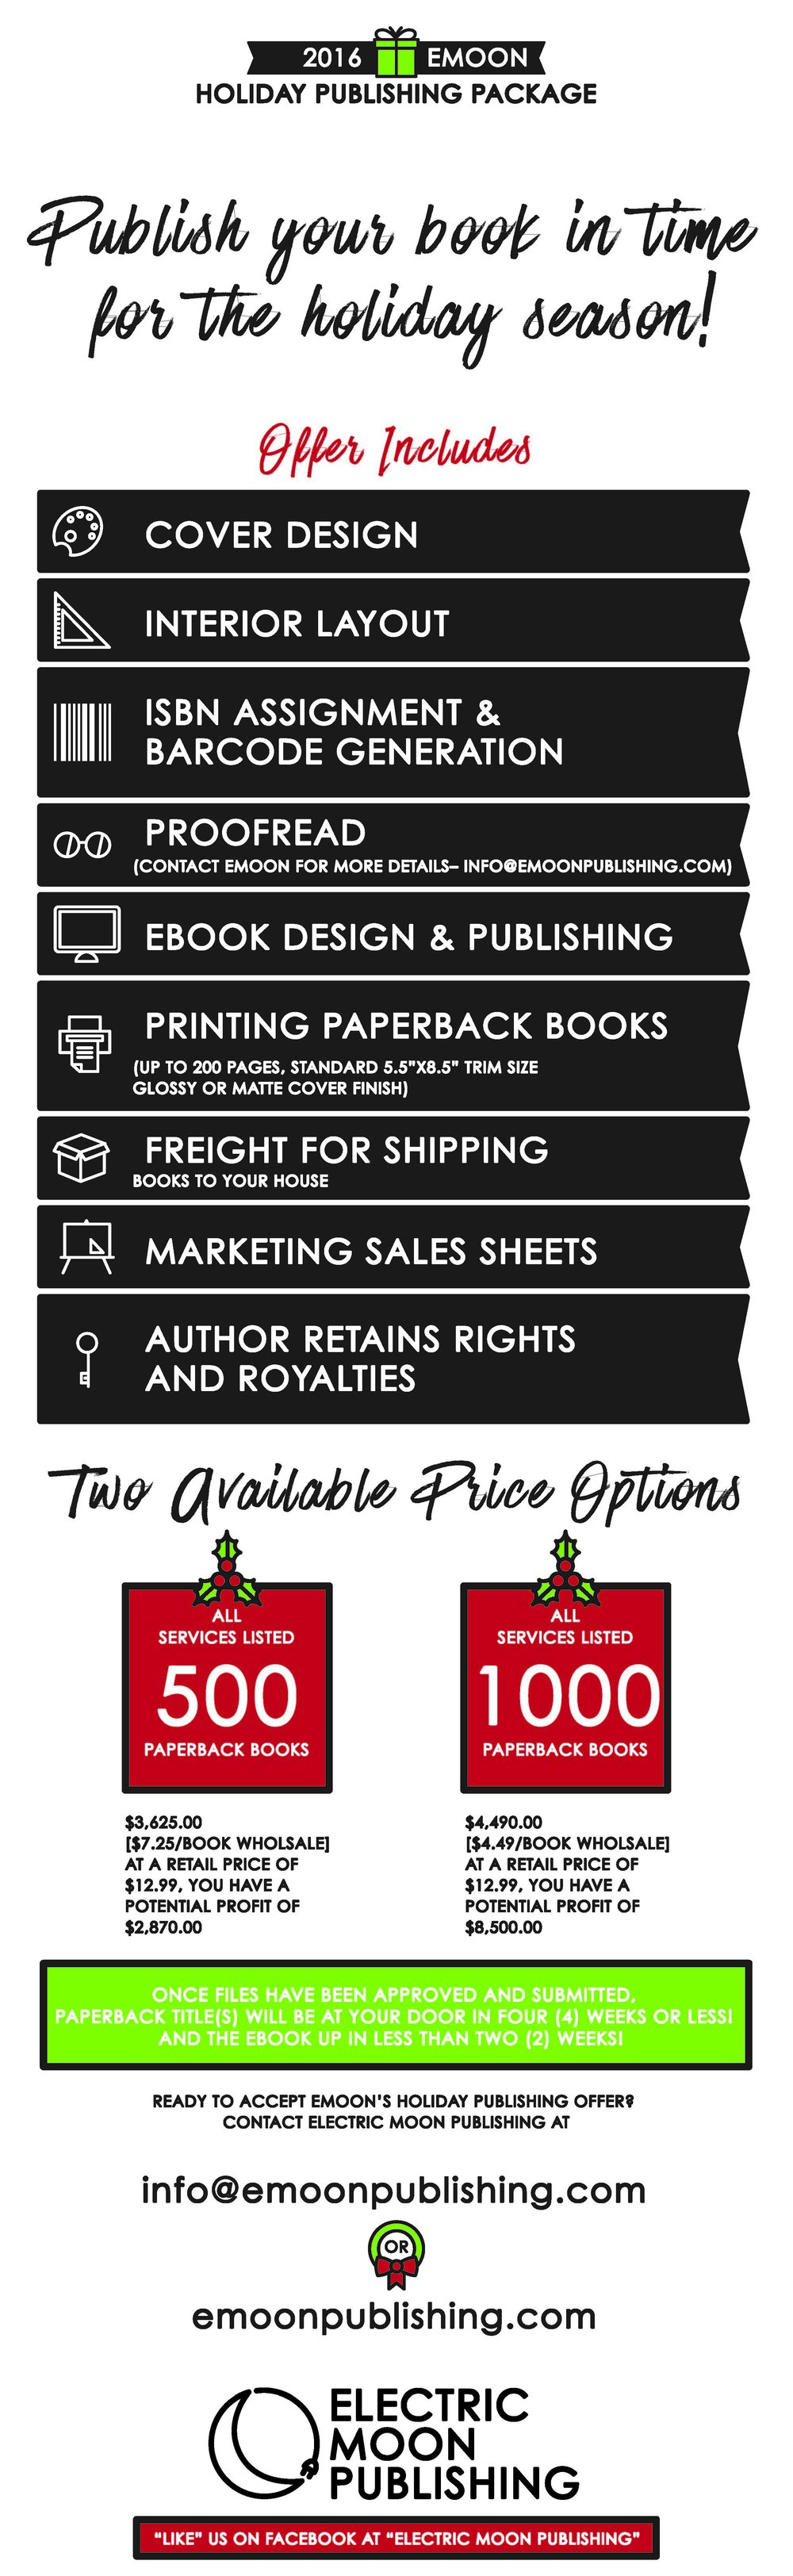 2016 holiday publishing package